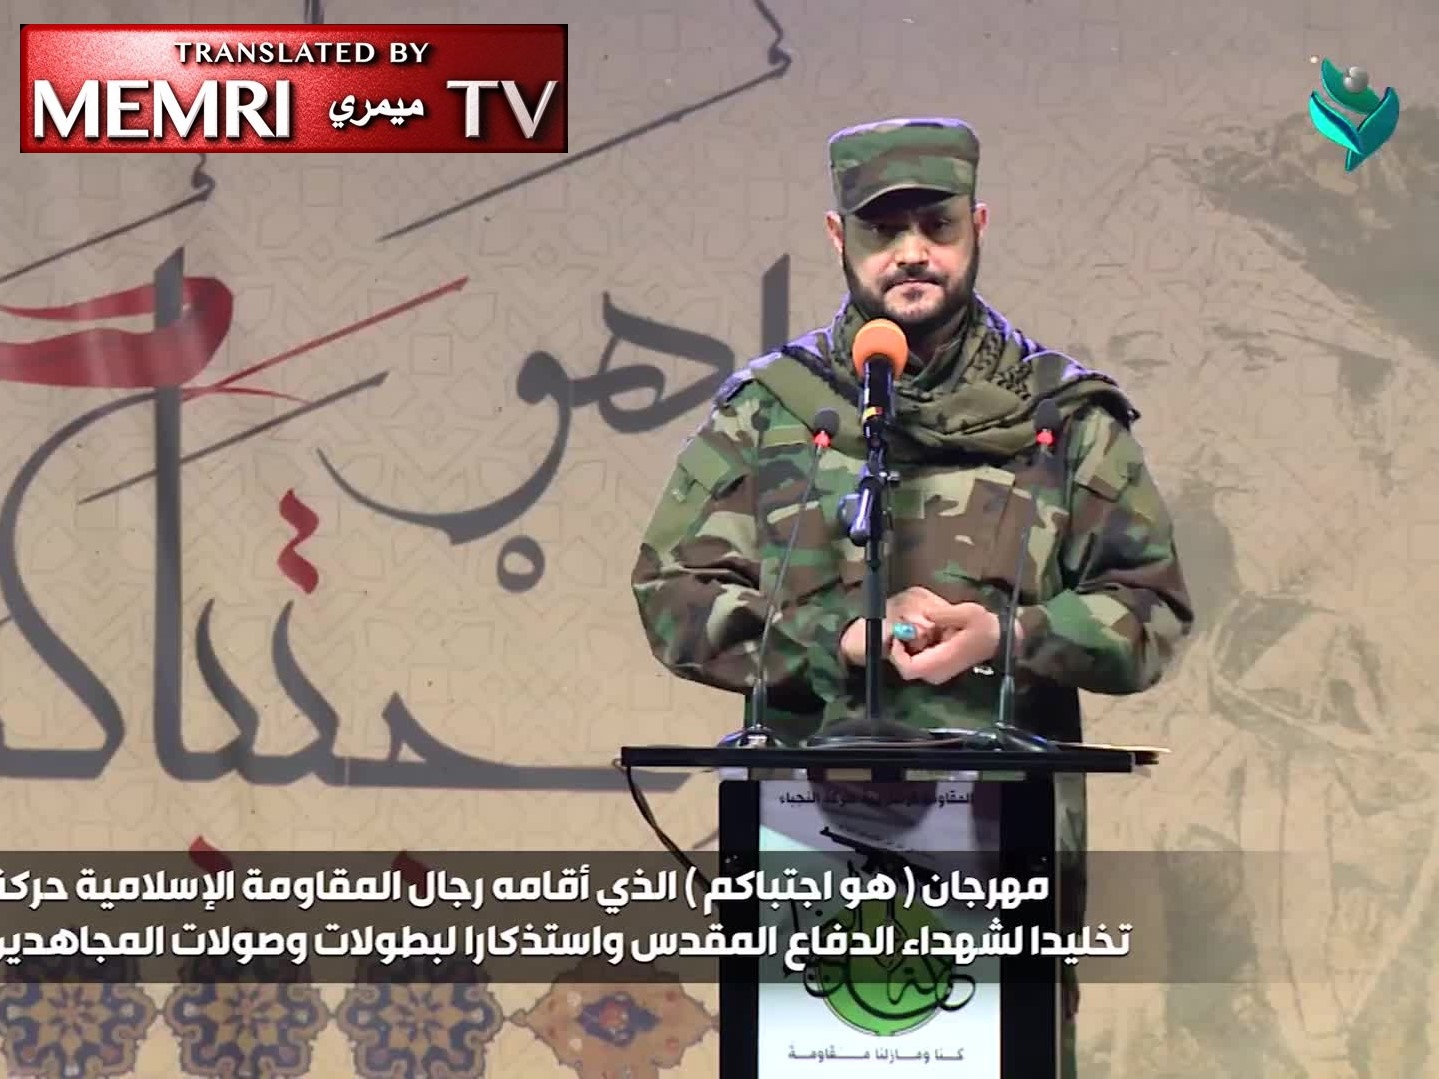 Iraqi Shiite Militia Leader Sheikh Akram Al-Kaabi: We Will Turn Tel Aviv, Haifa into Deserts; Will Chop off the Heads of the Snake – U.S., Israel